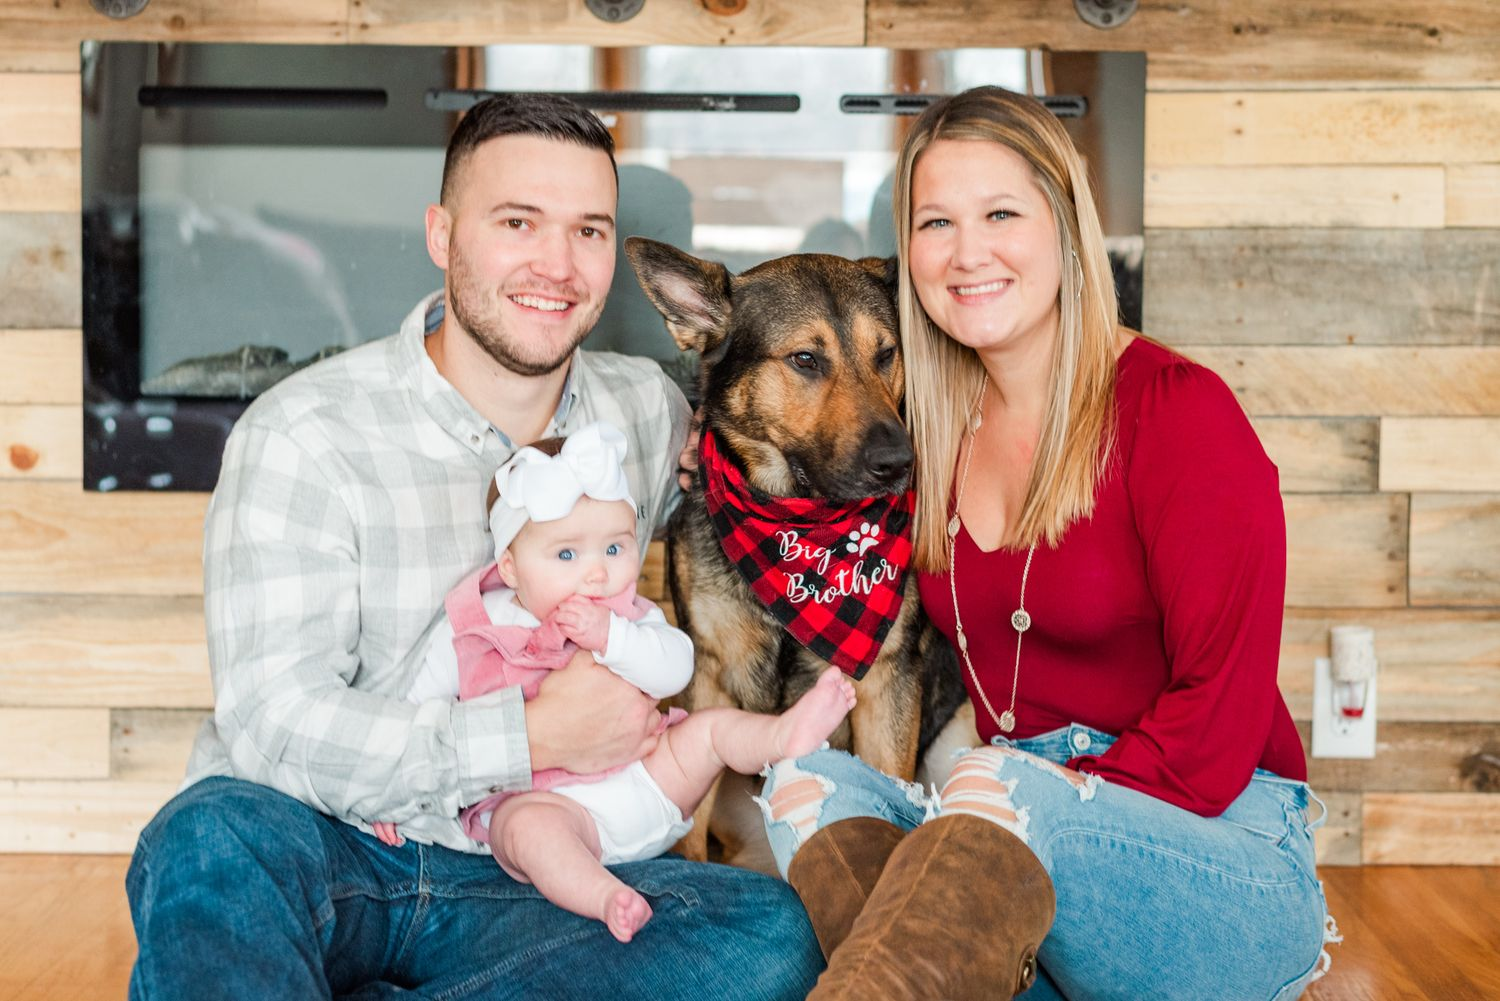 Lifestyle family photoshoot in the home with mom, dad, dog, and 6 month old baby wearing bow in Gibsonia, Pennsylvania